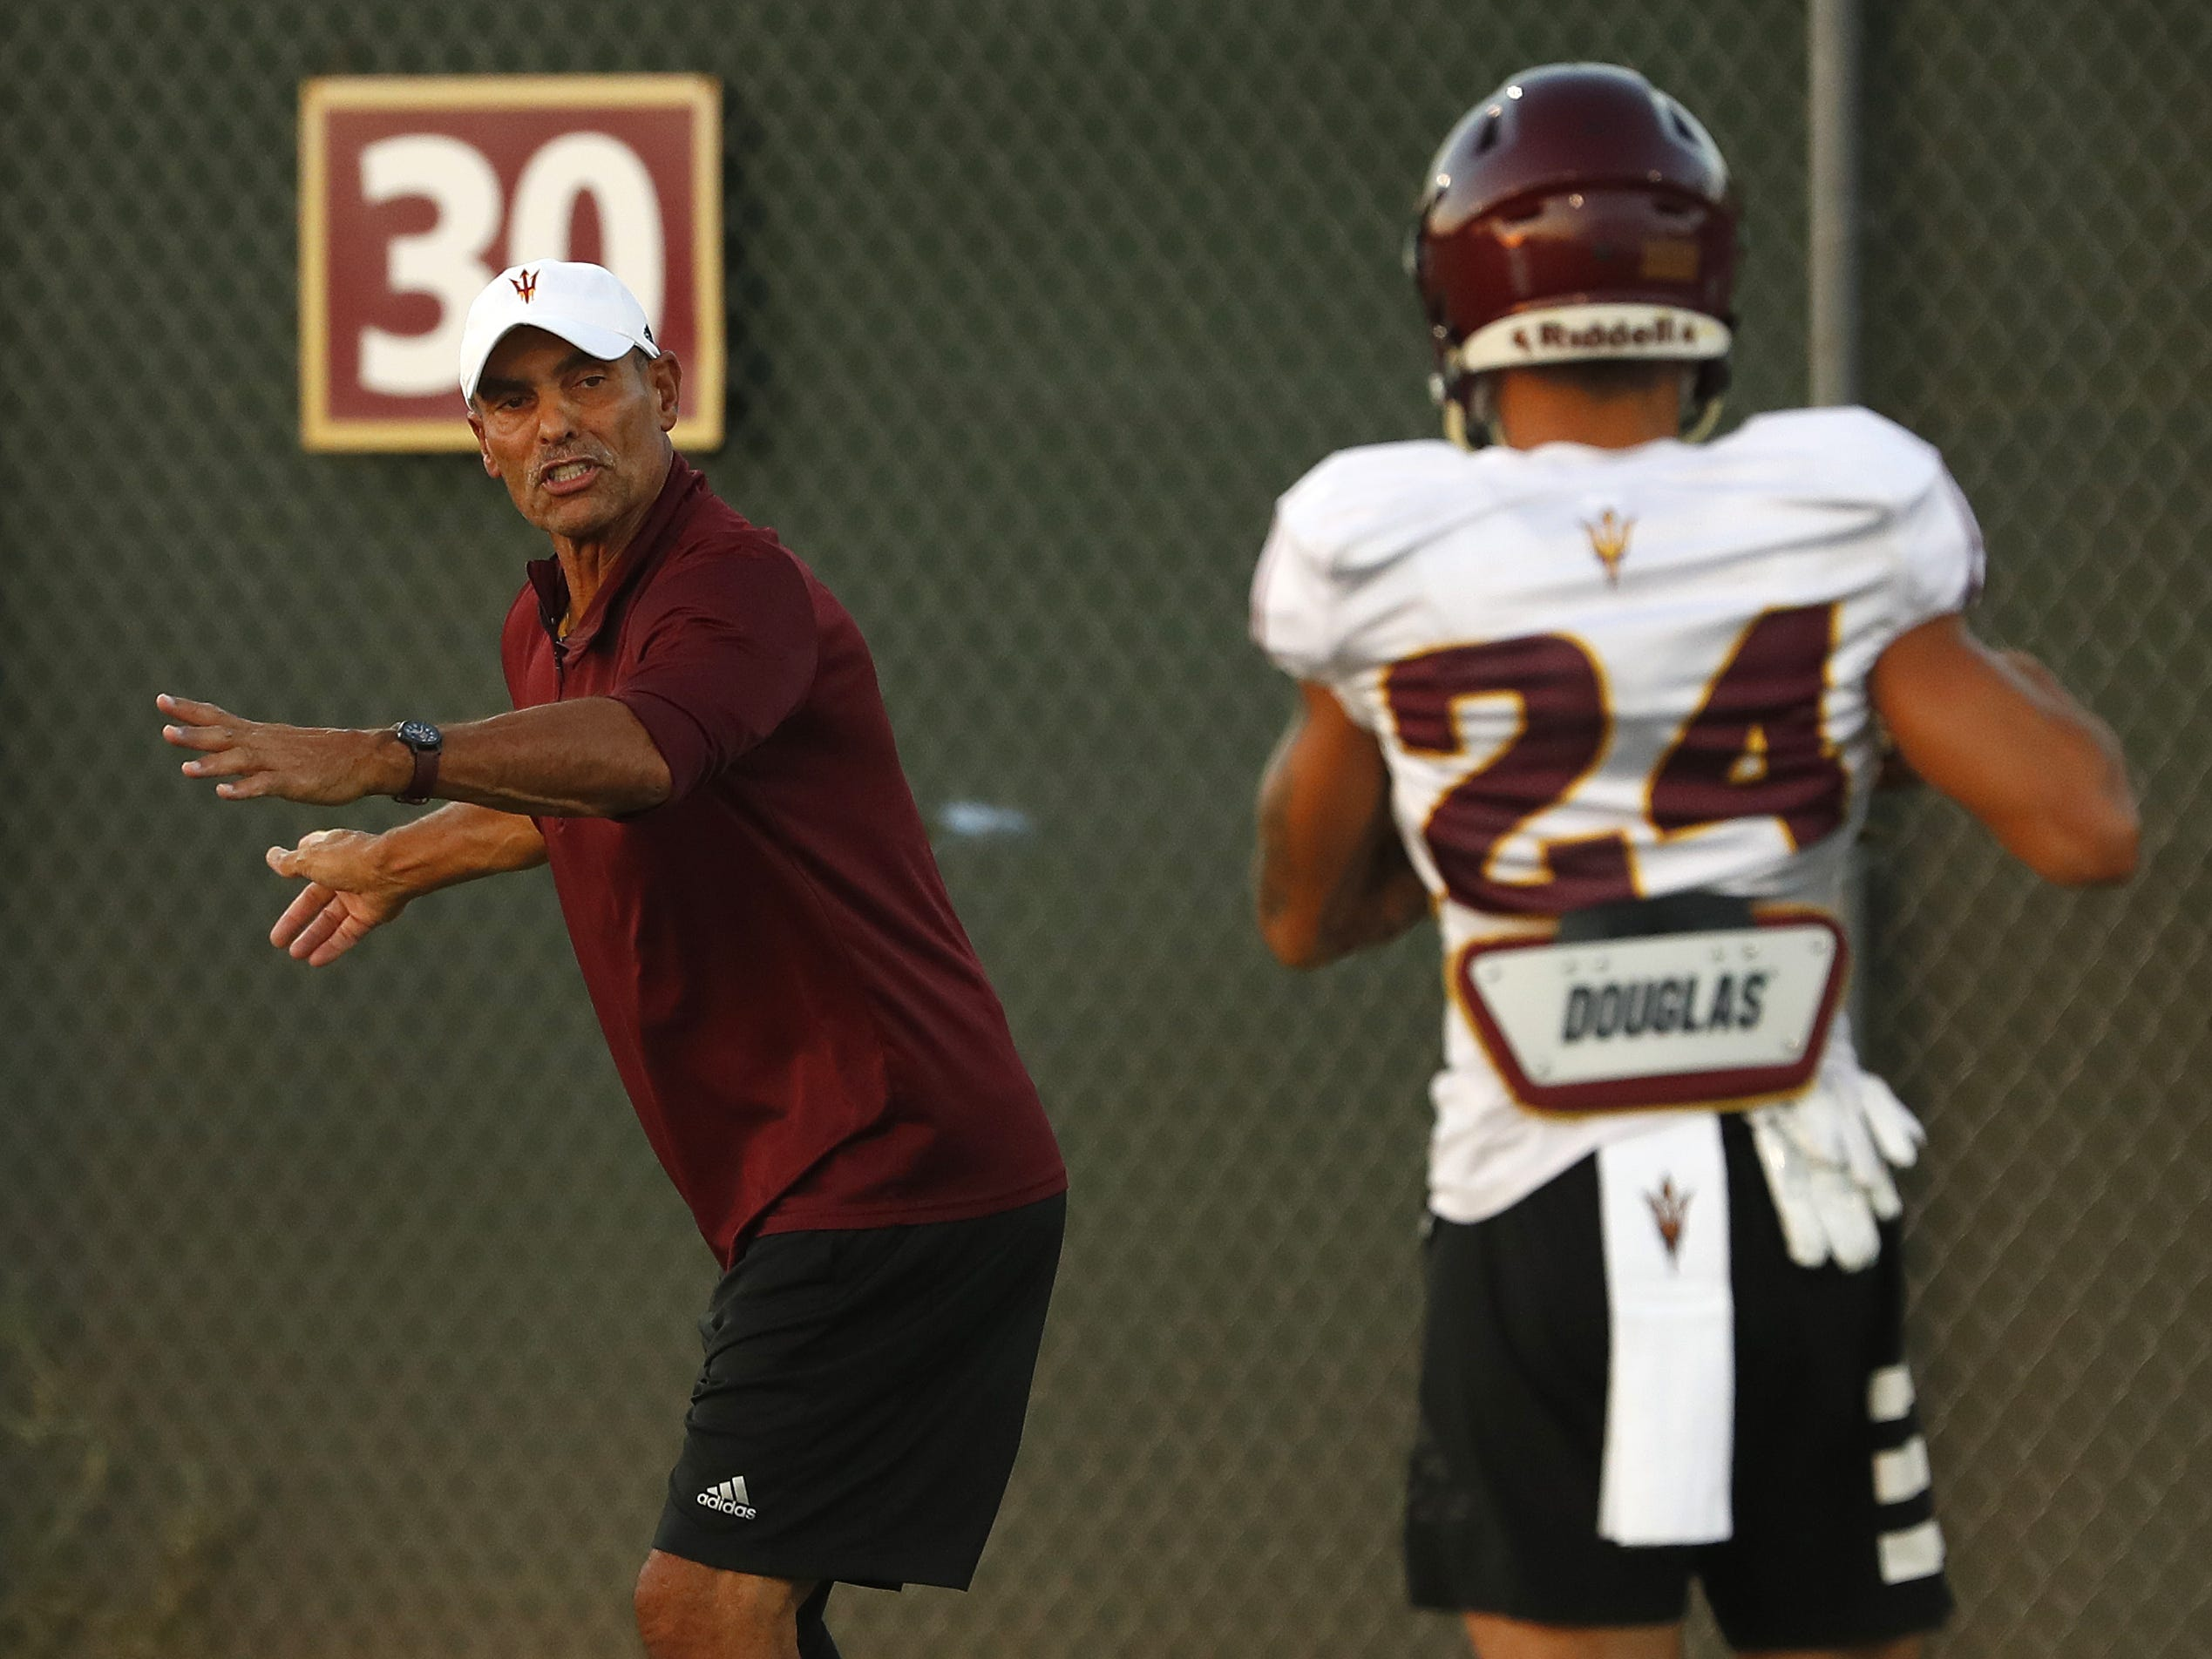 ASU's head coach Herm Edwards instructs players during a practice at Kajikawa Football Practice Fields in Tempe, Ariz. on Aug. 6, 2018.